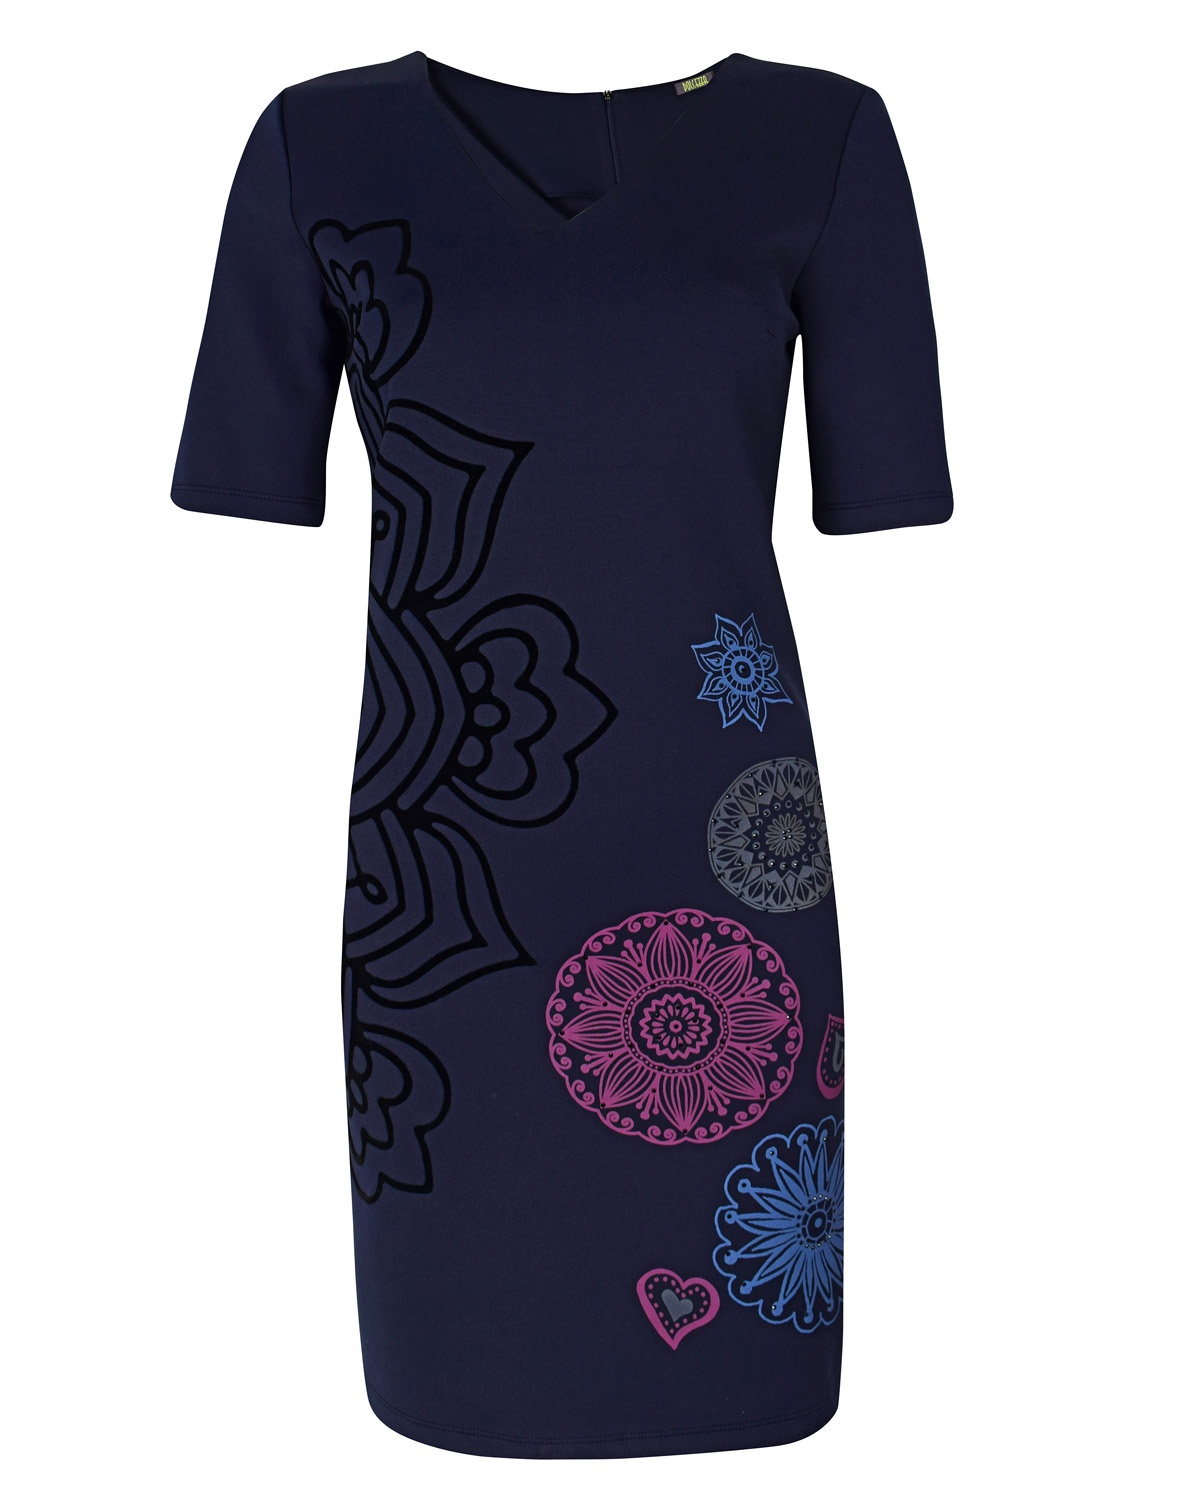 Dolcezza: Blue Velvet Engraved Petals Midi Dress SOLD OUT